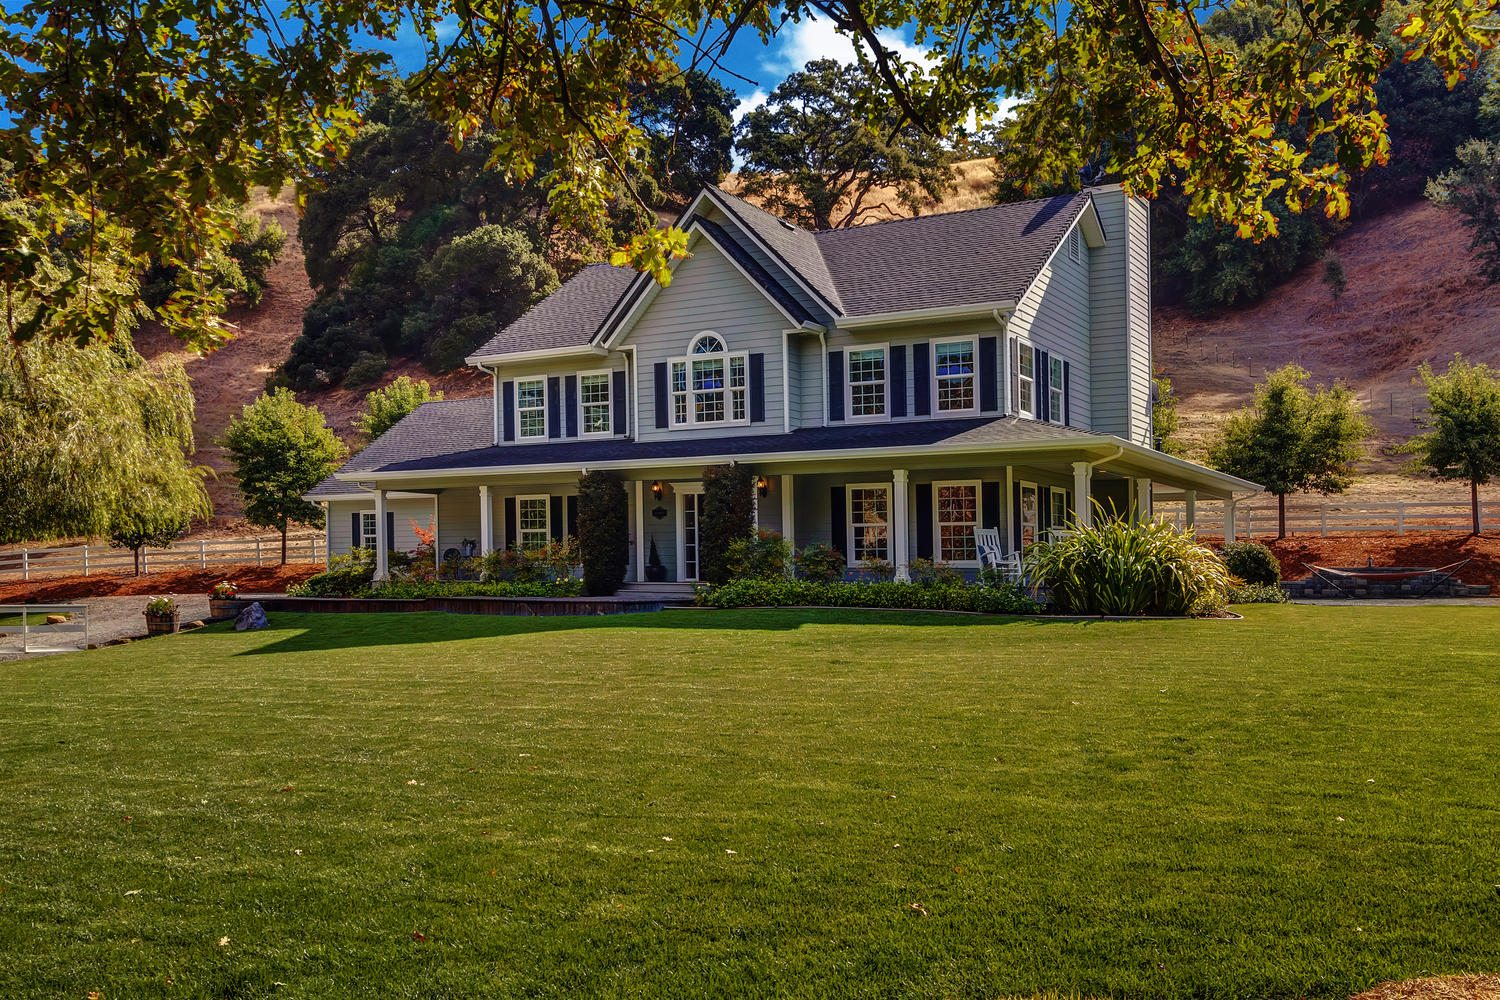 95-hampton-rd-briones-ca-94553-large-003-74-country-estate-constructed-in-1500x1000-72dpi